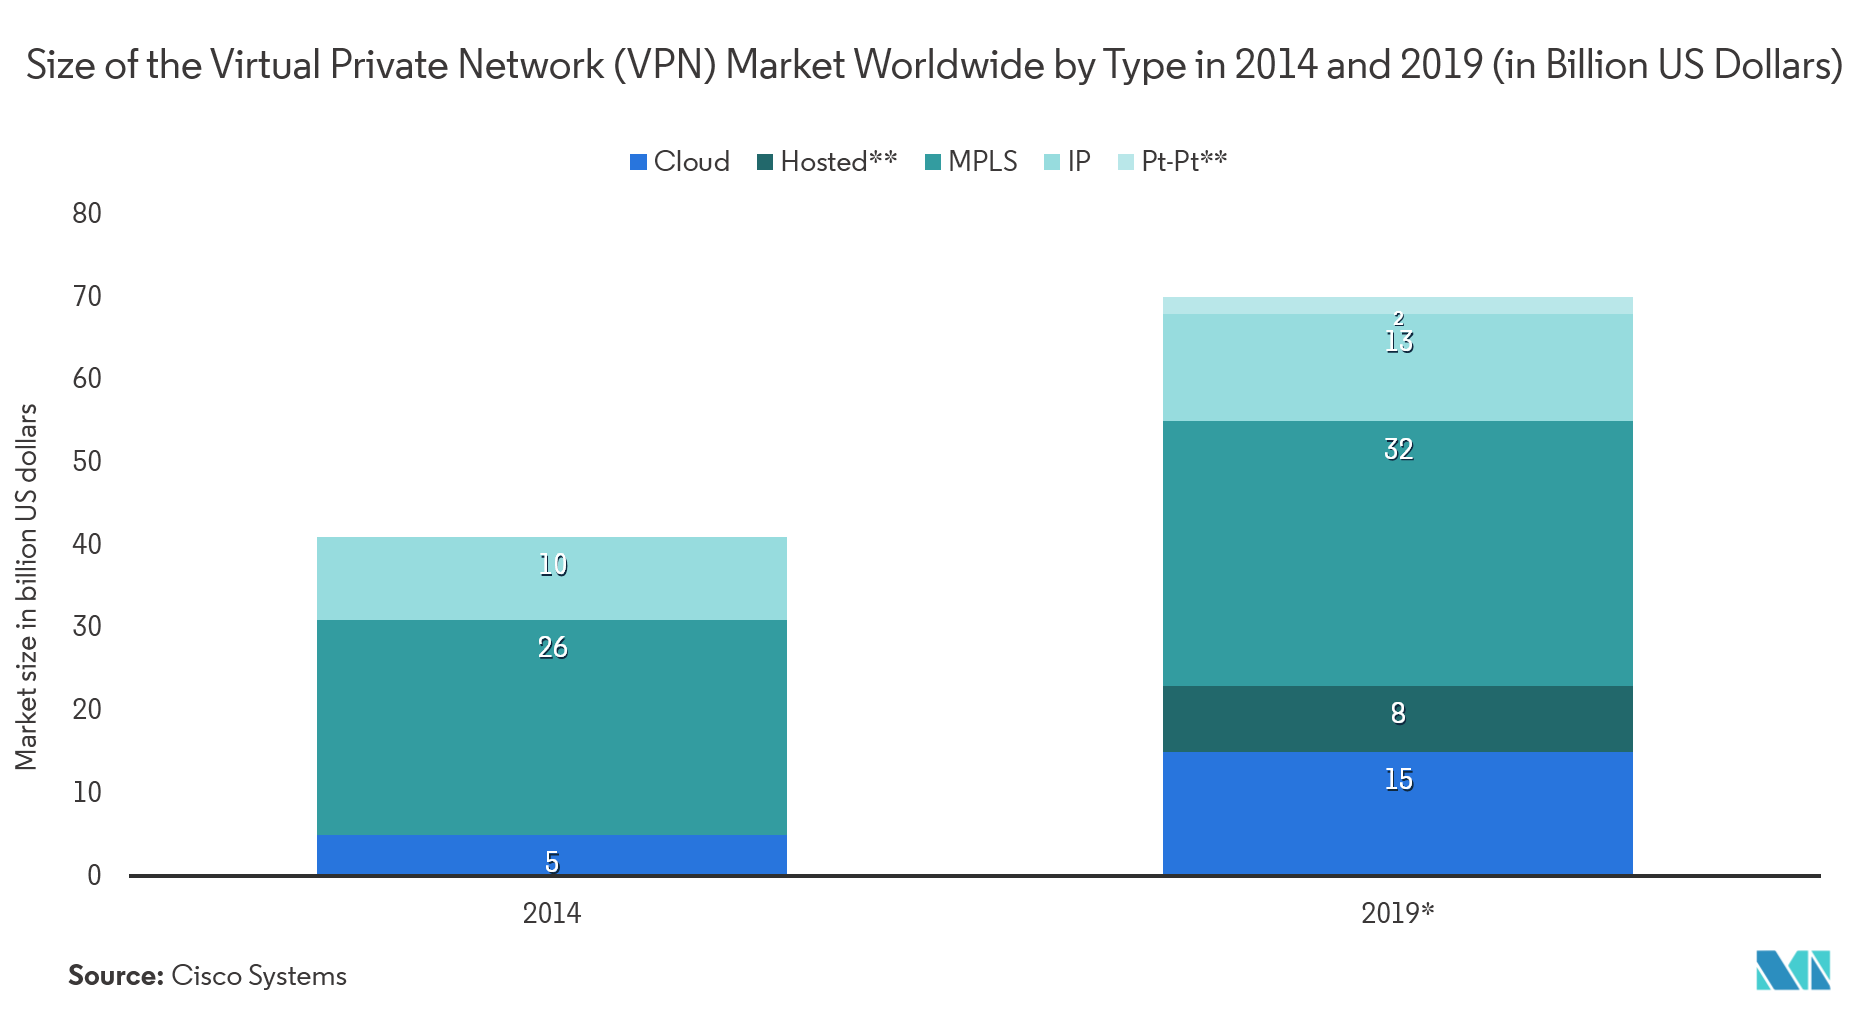 Managed Network Services Market Share